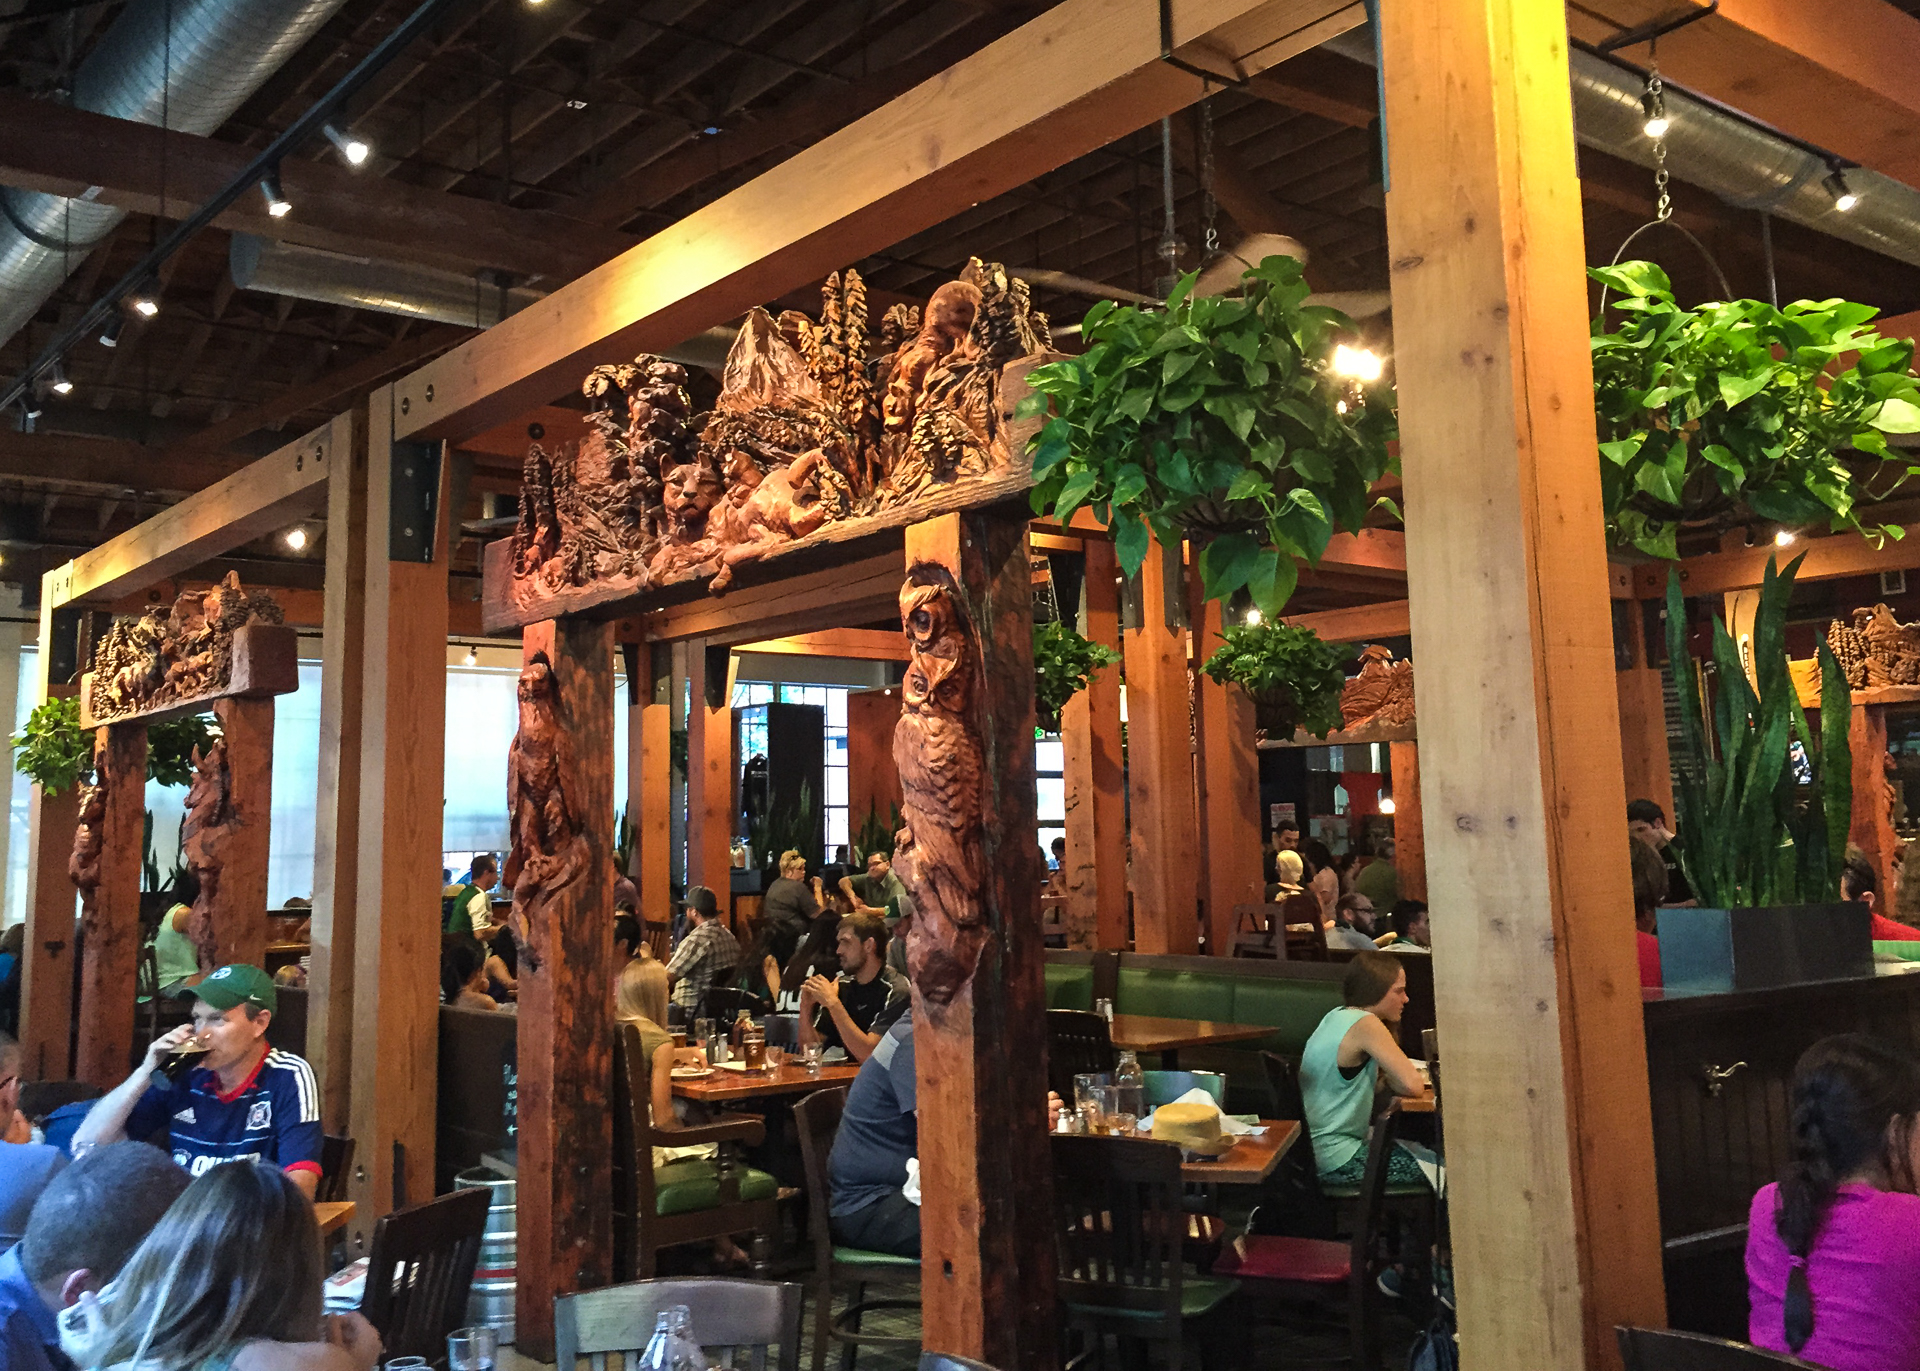 Inside Deschutes, they have all these amazing carvings separating the seating areas.